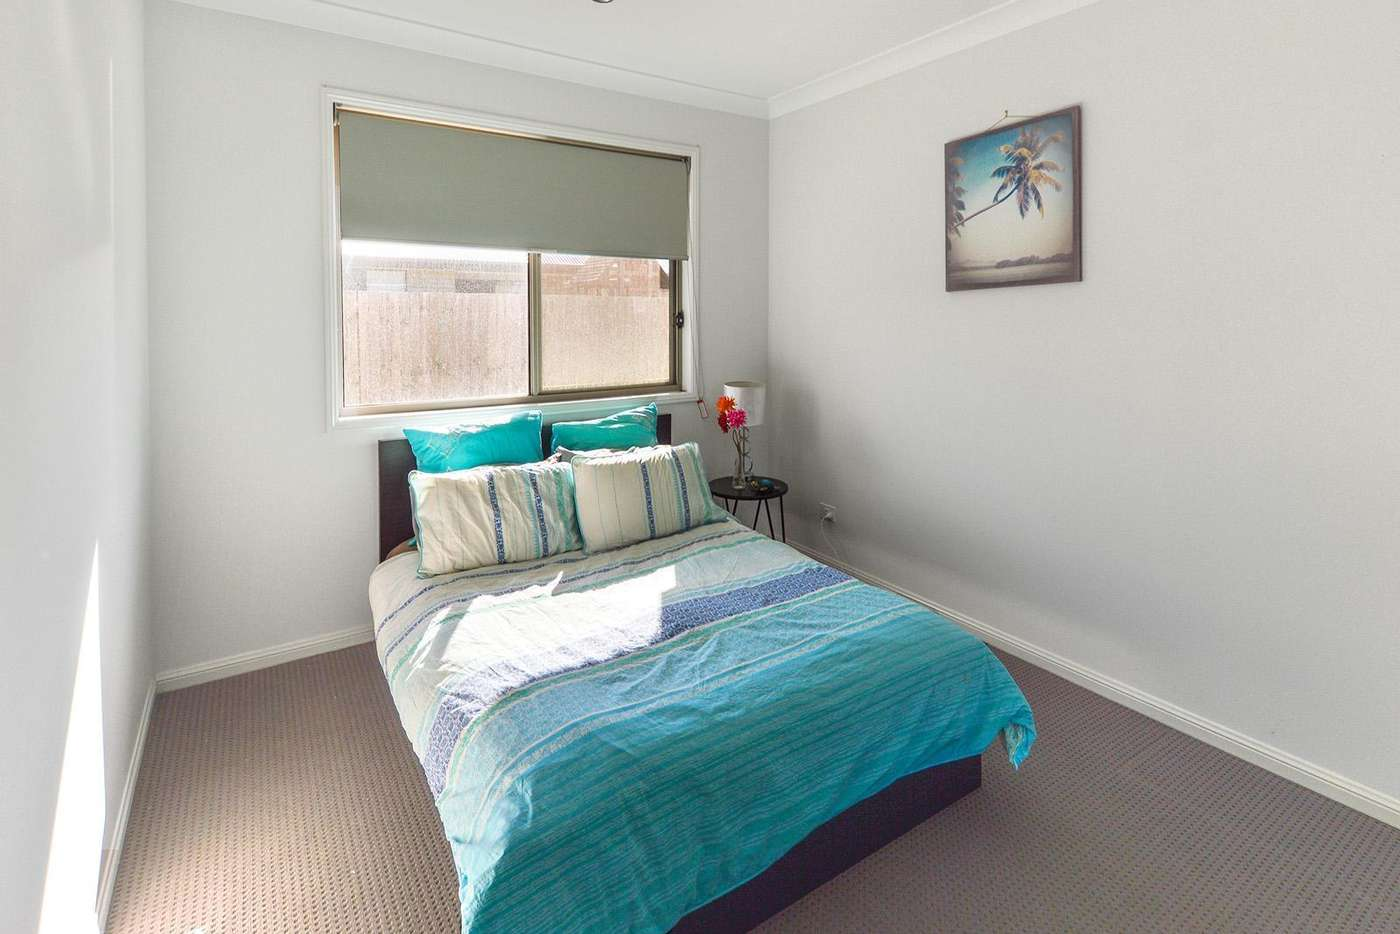 Sixth view of Homely house listing, 3 Koda Street, Ripley QLD 4306